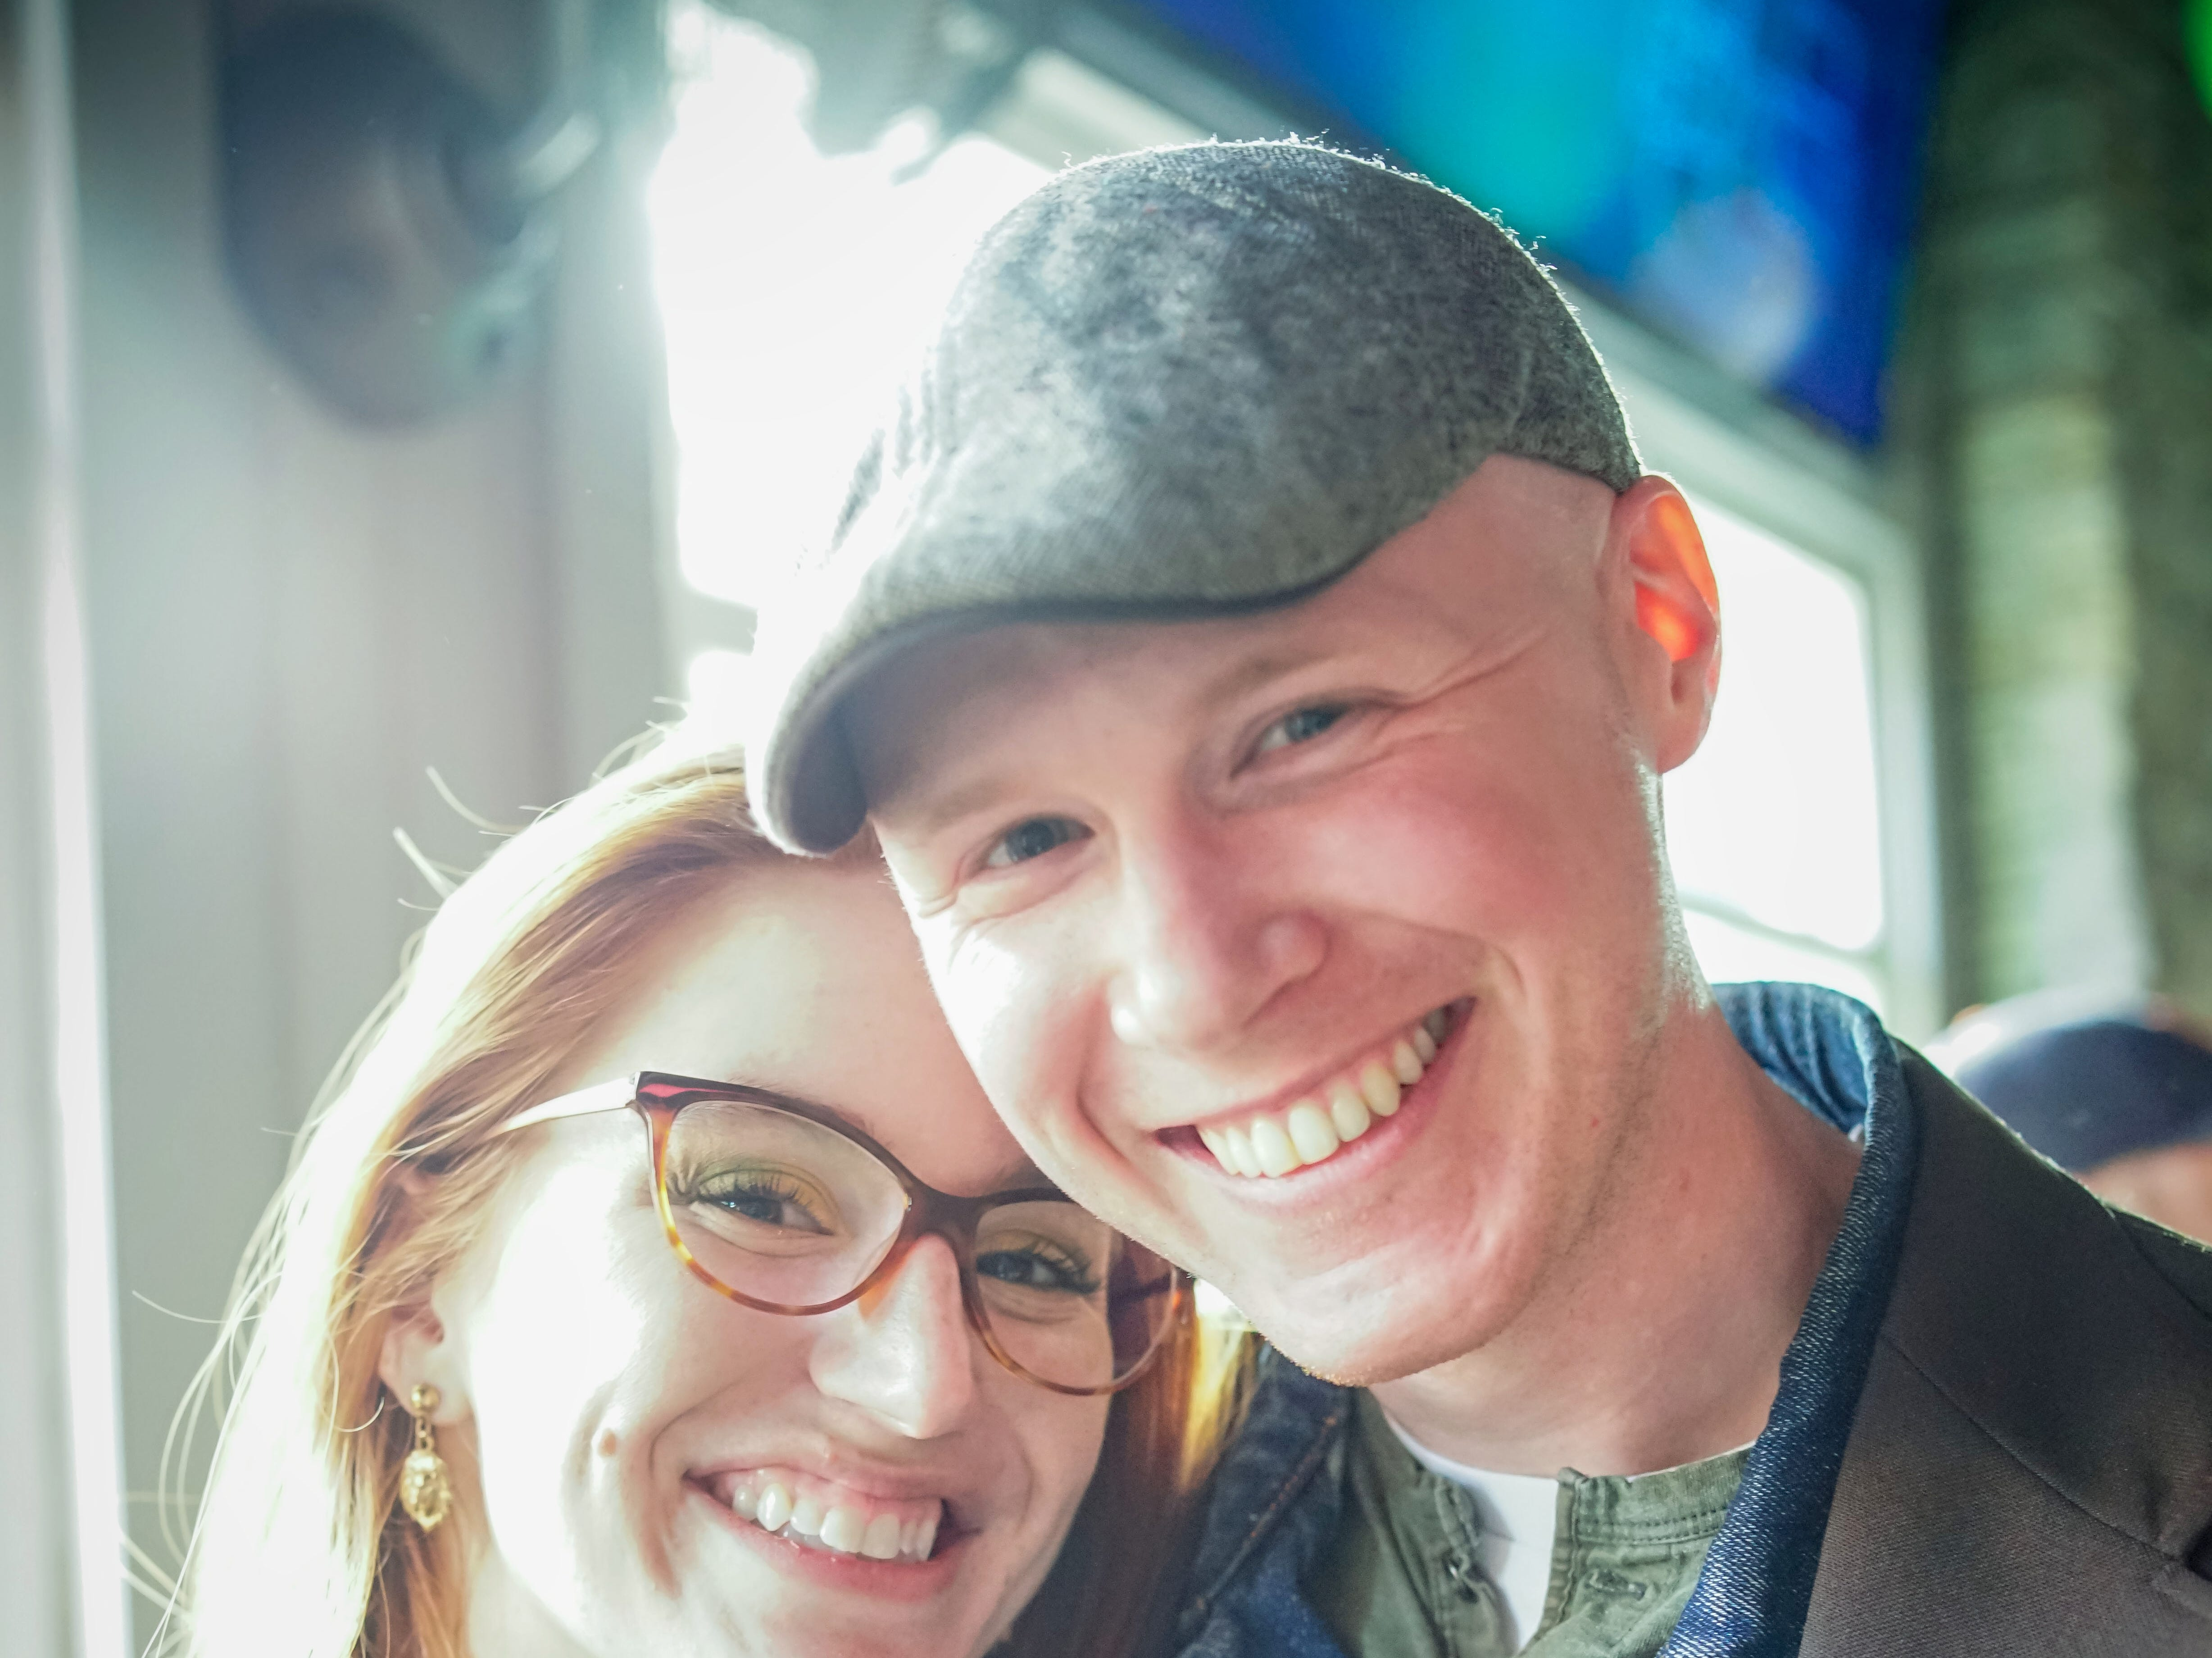 Matt Jacobsen, 28, Laura Kottke, 25, both of Des Moines, having a great time, Saturday, March 16, 2019, at Pints.